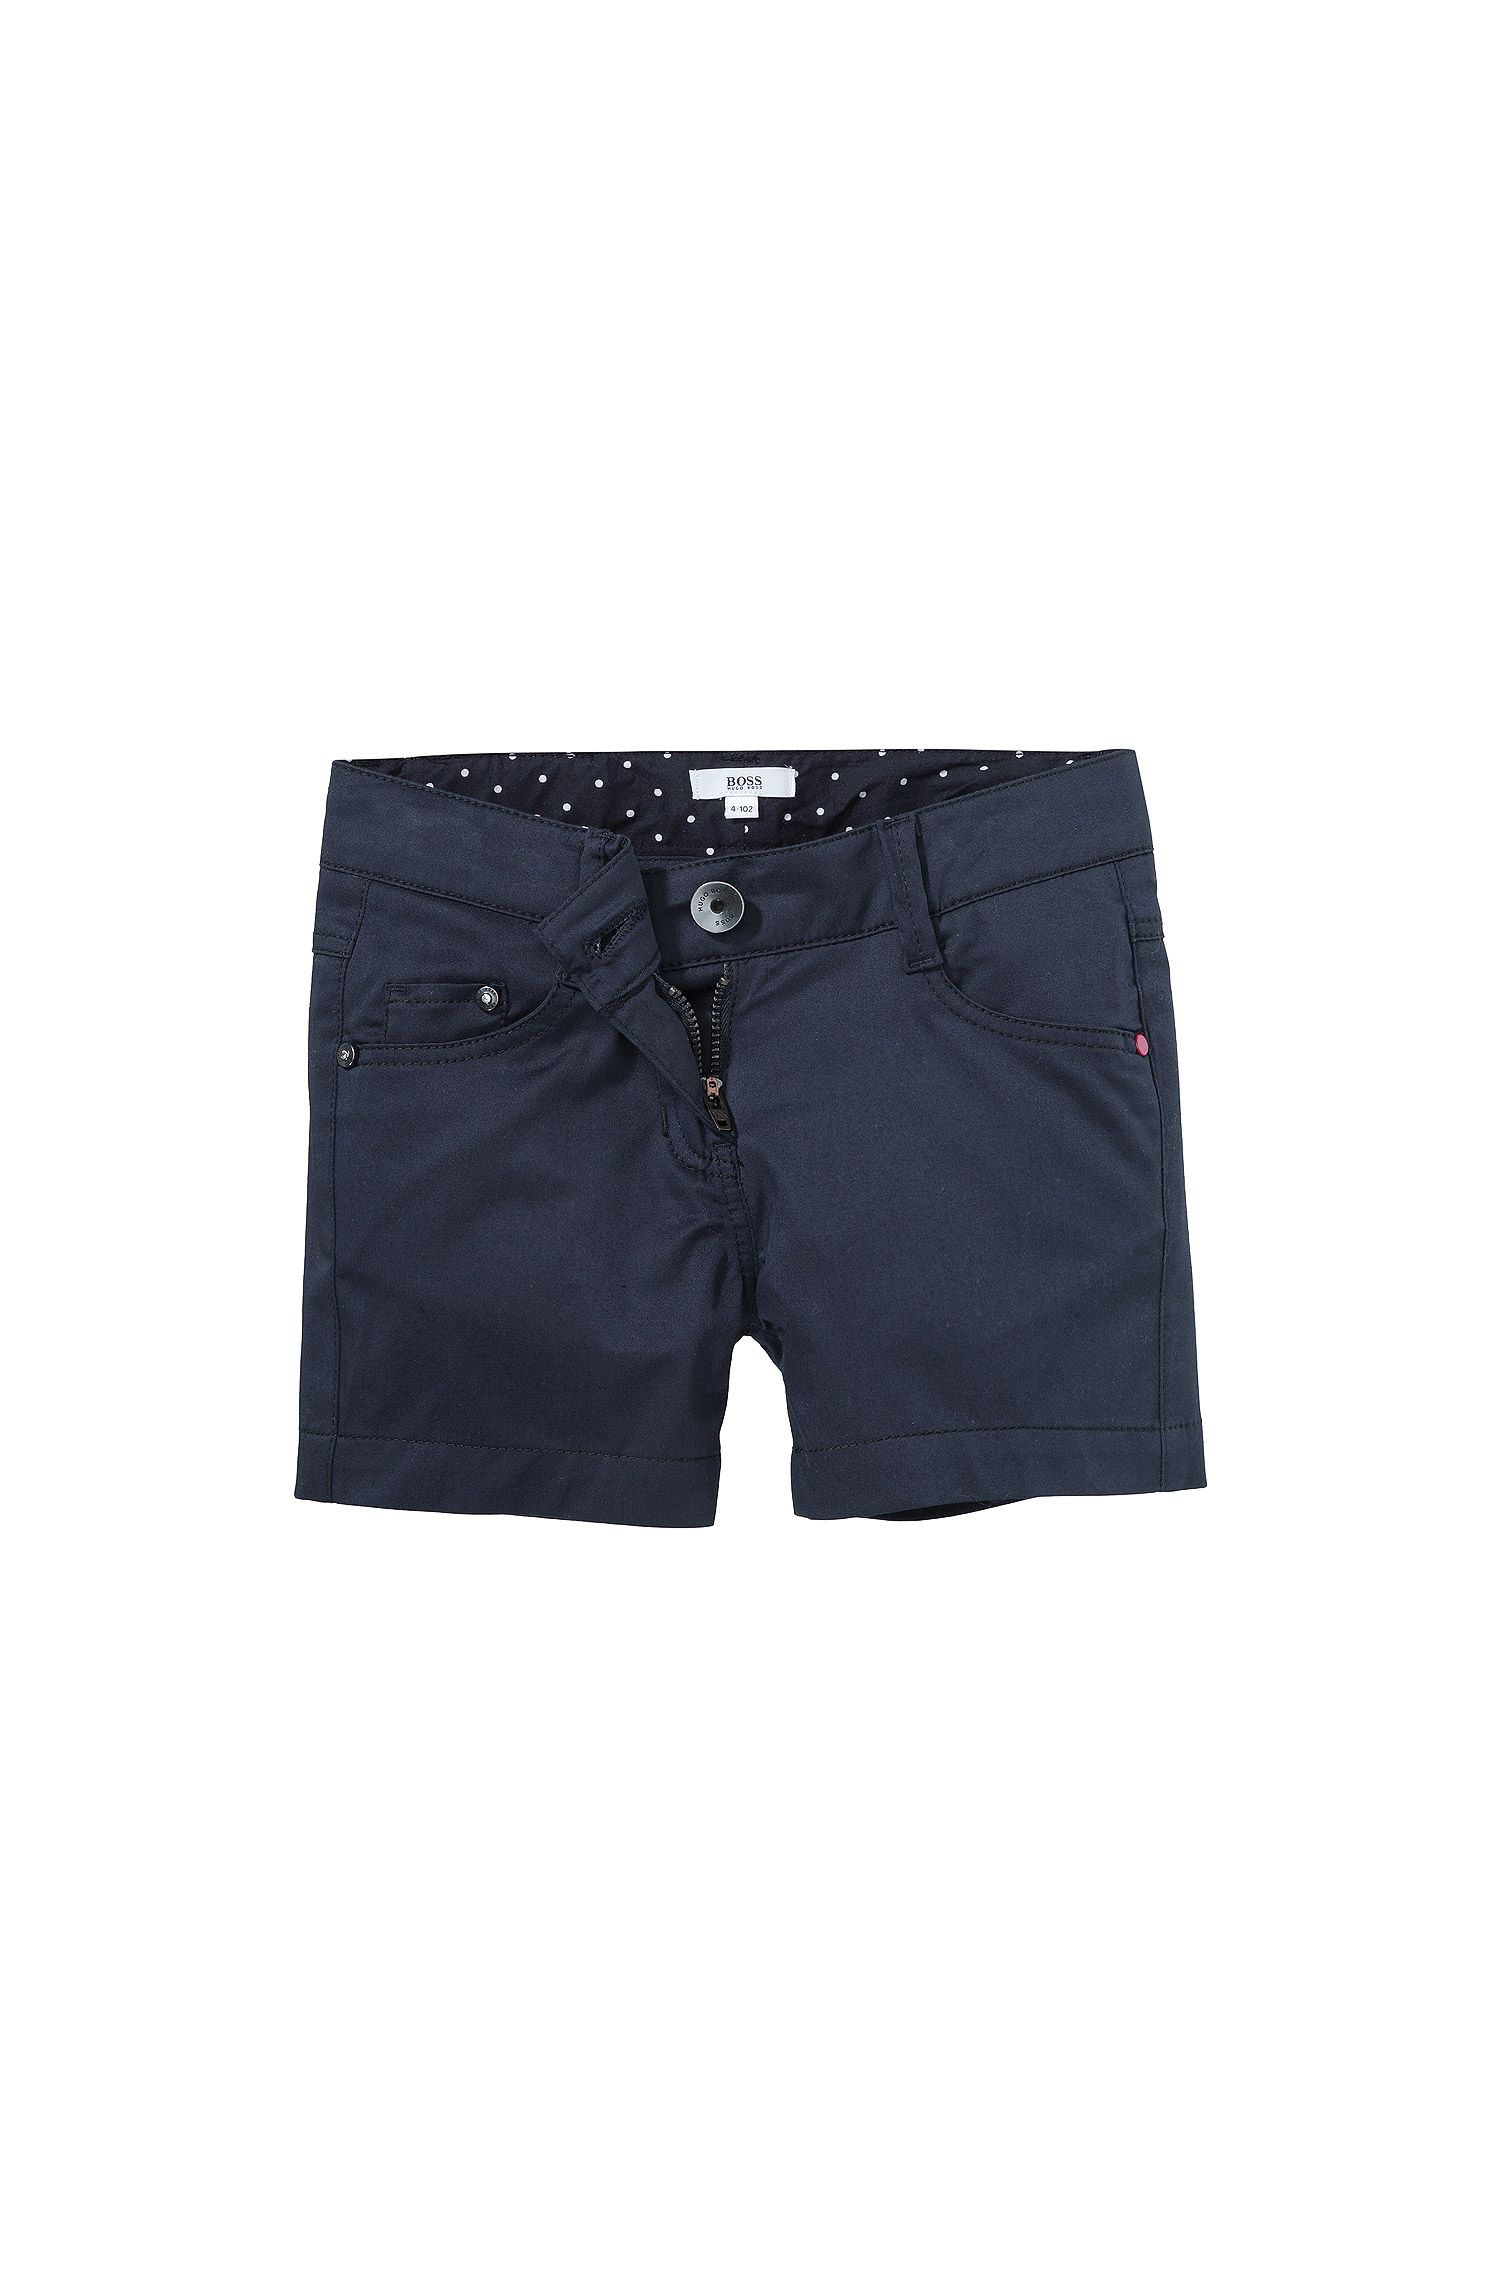 Kids-Shorts ´J14142` aus Baumwoll-Mix